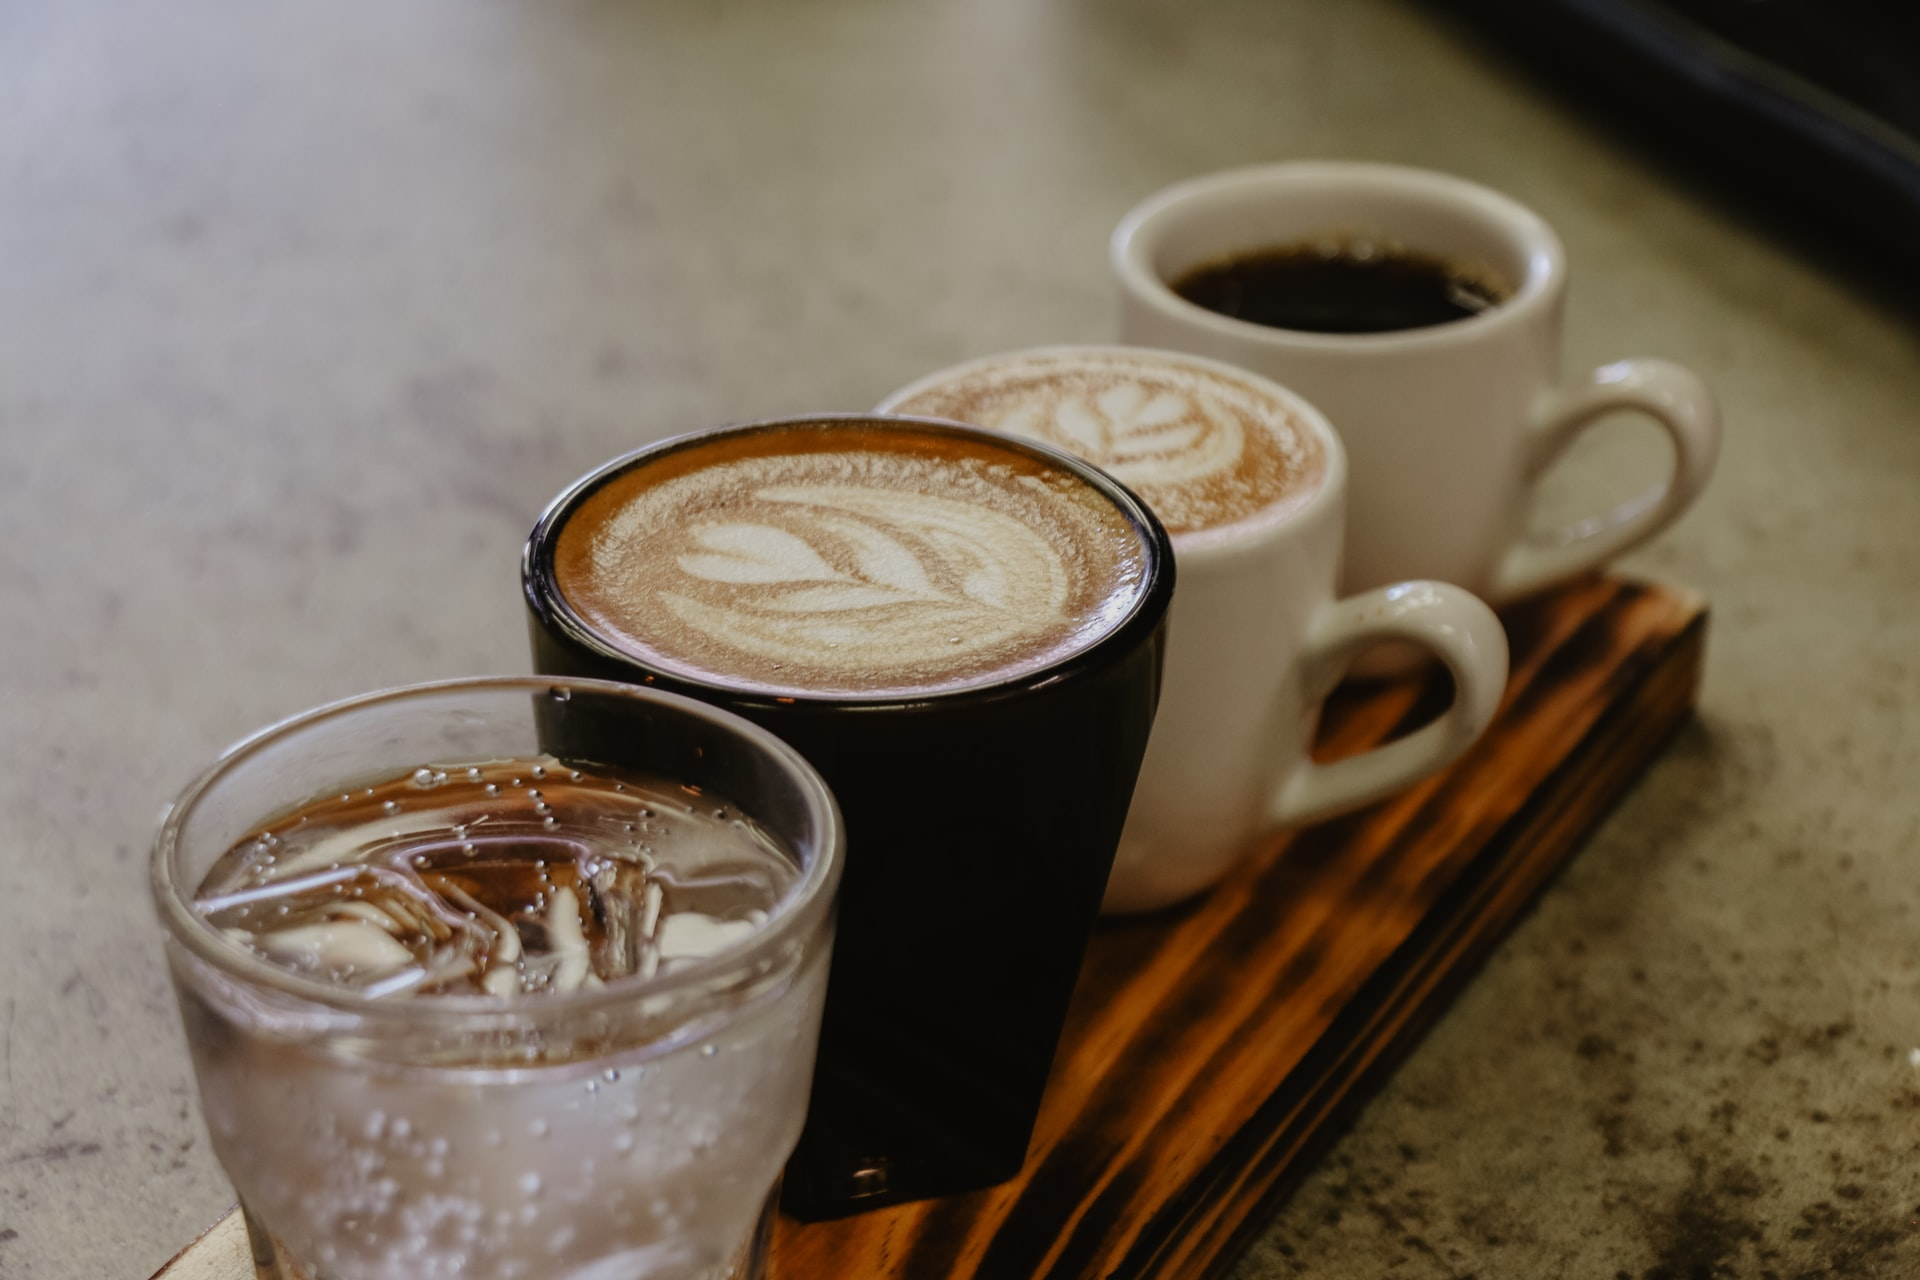 Wooden plank with a glass of water, 2 lattes with foam art, and one cup of black coffee